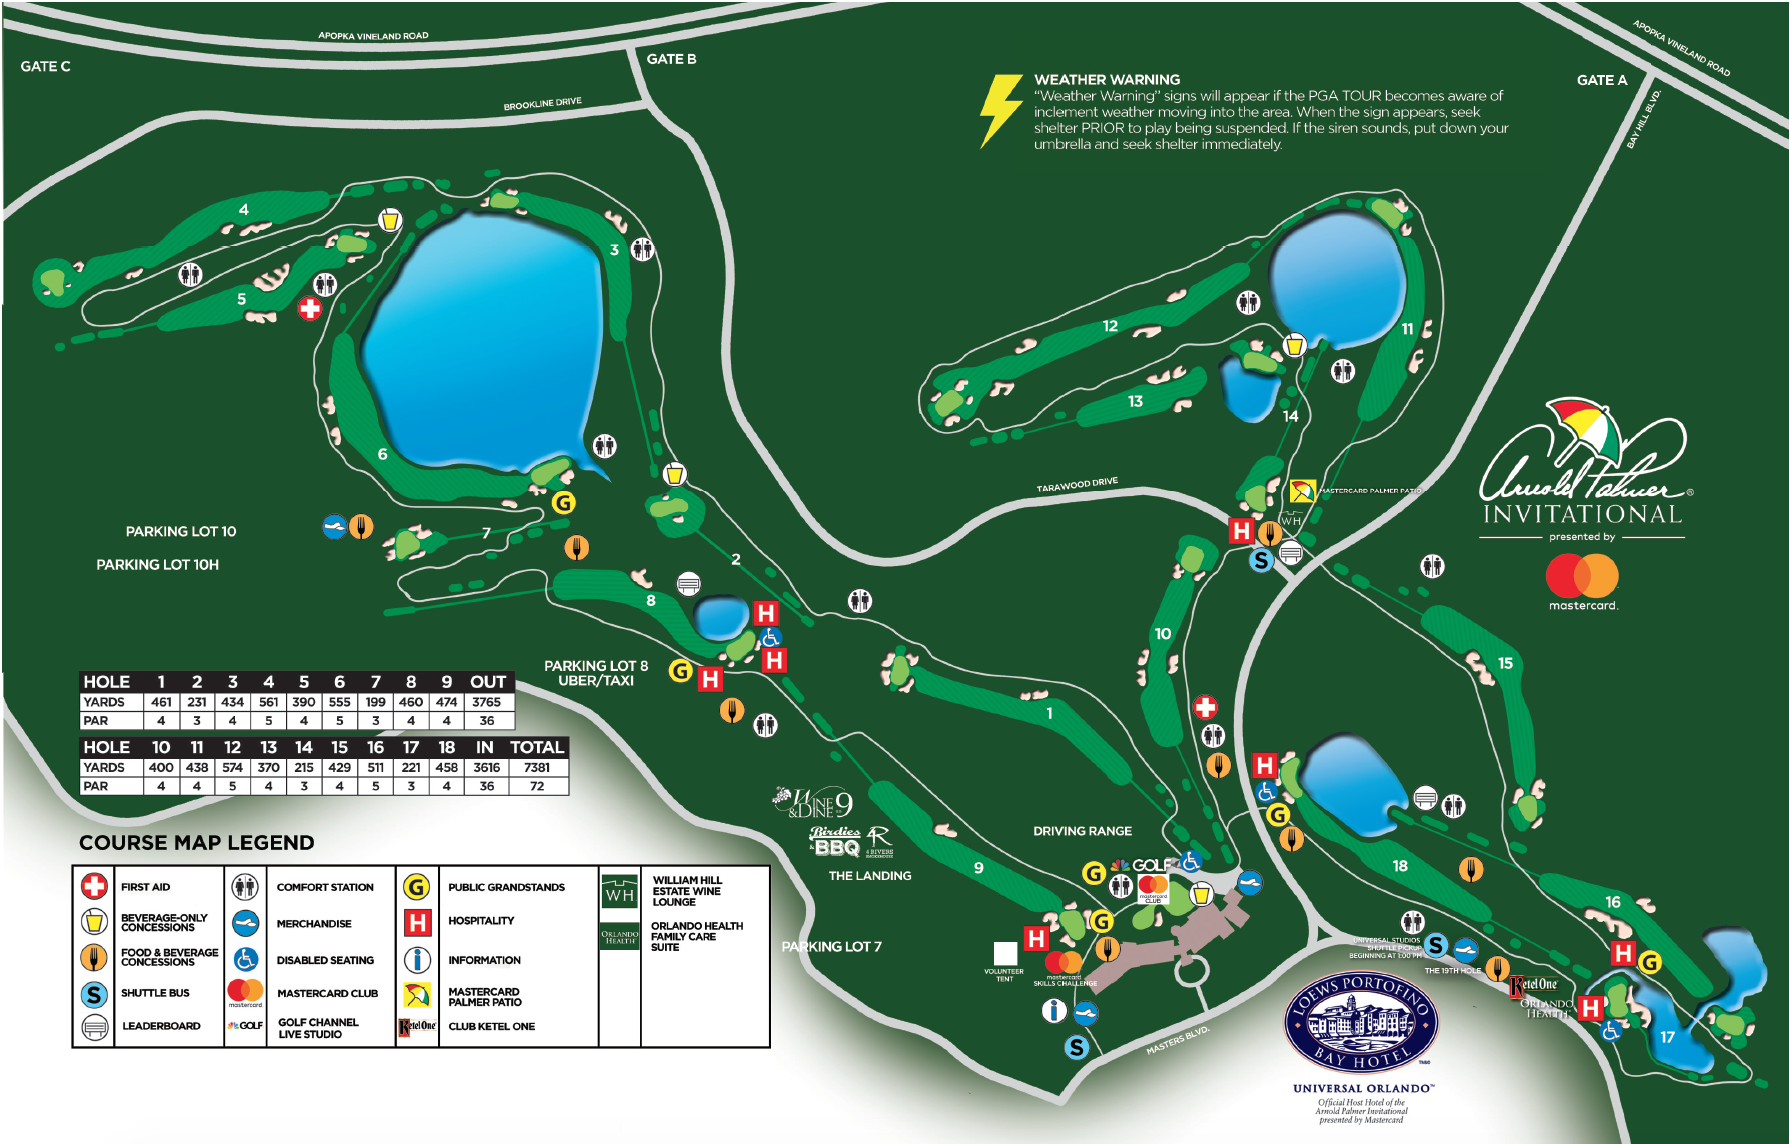 2018 Course Map